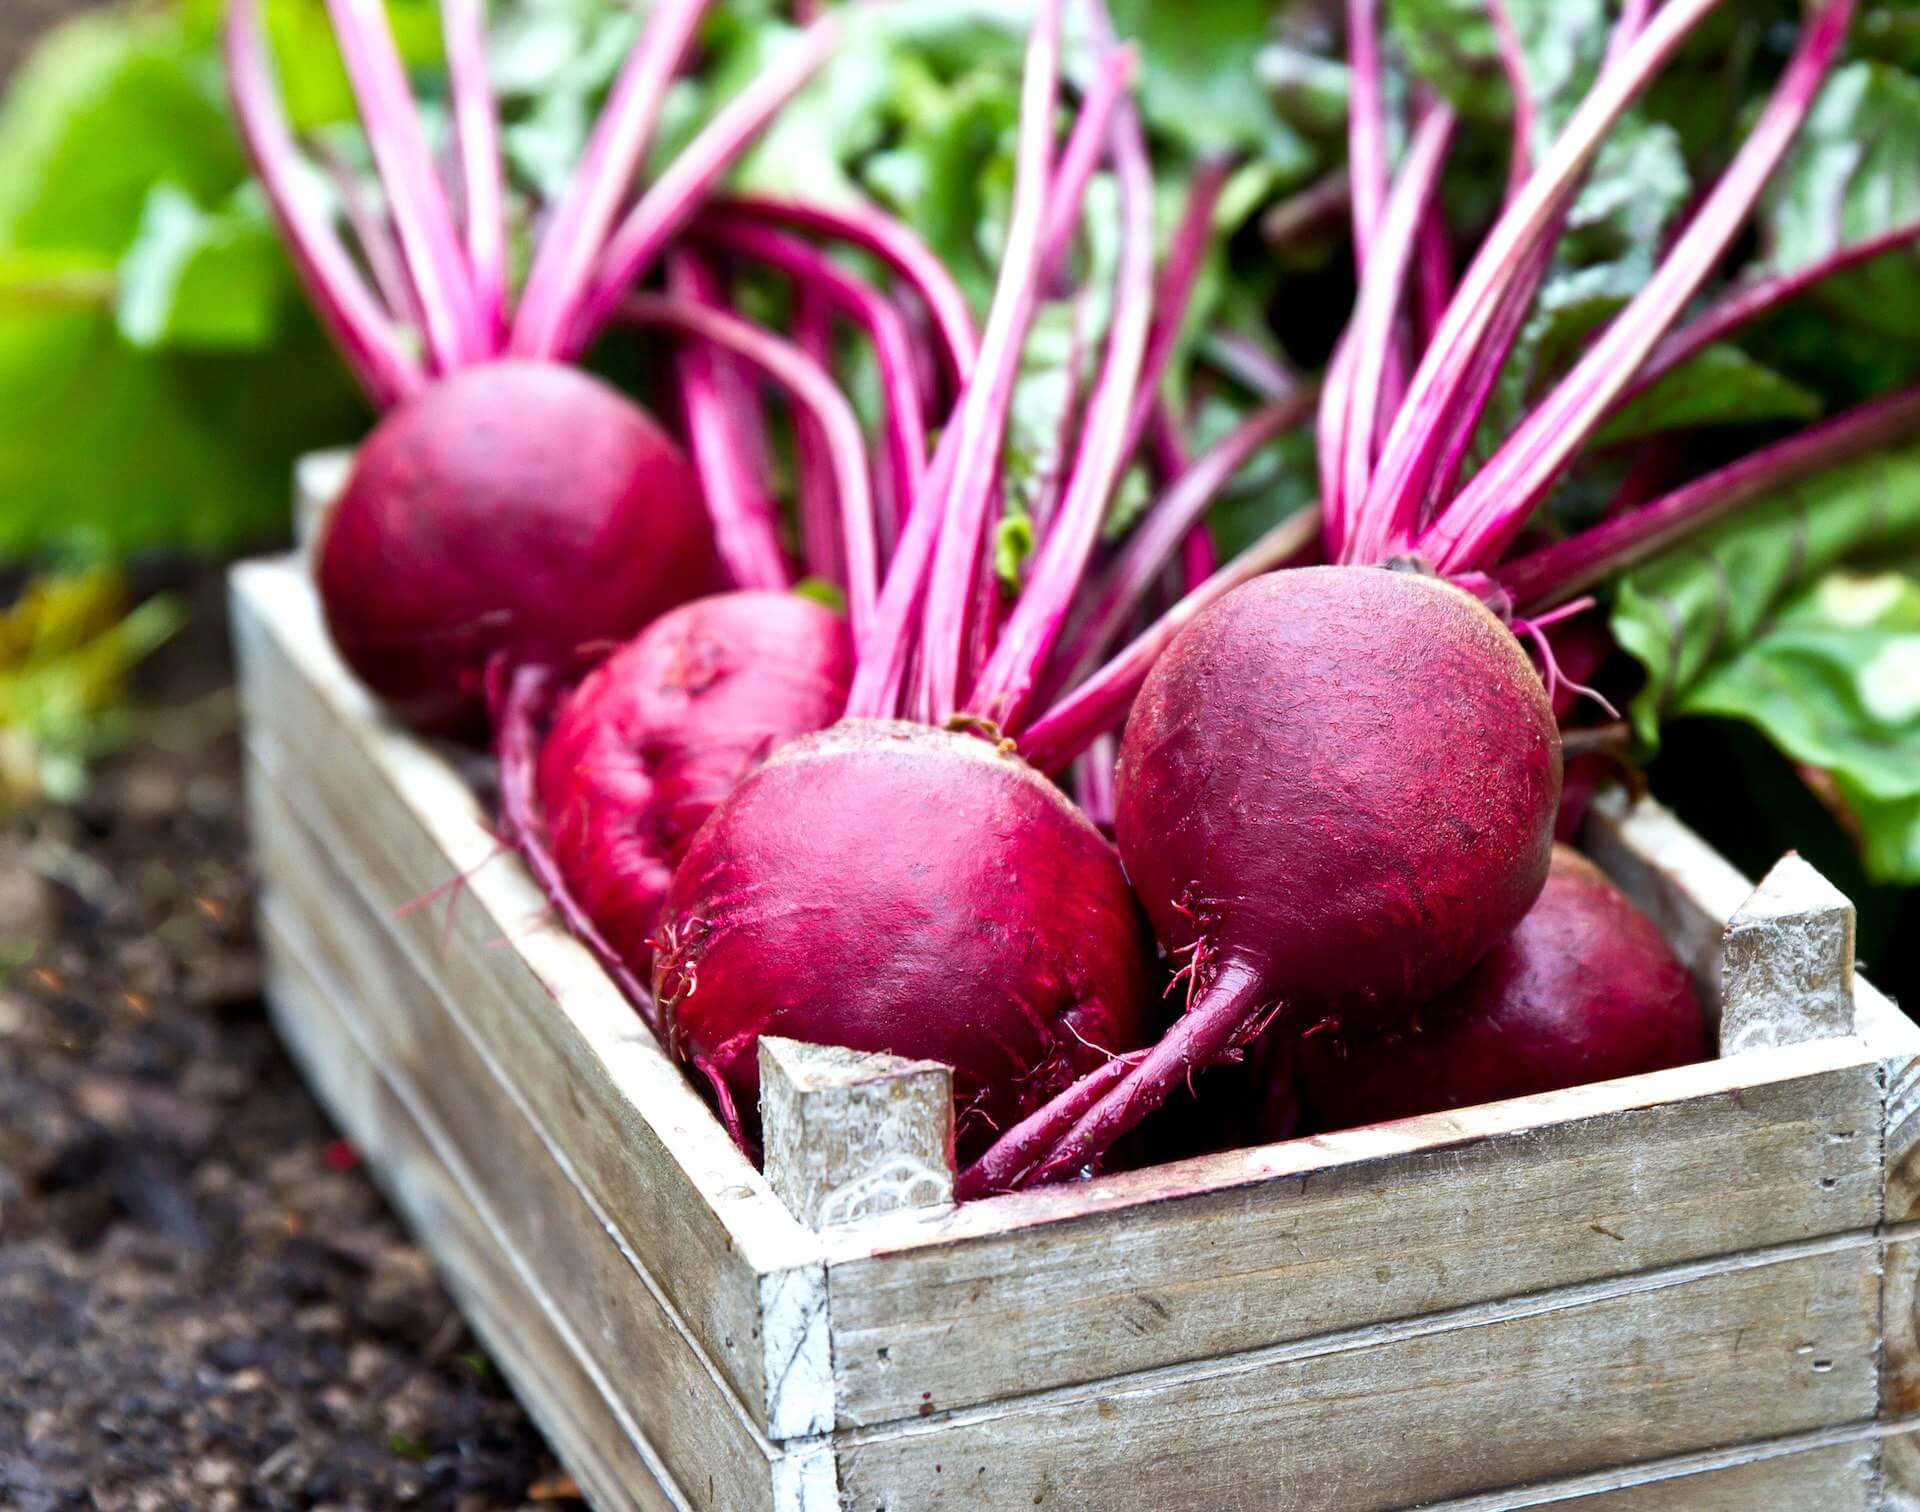 freshly picked pinkish red beets with leaves in a wooden tray